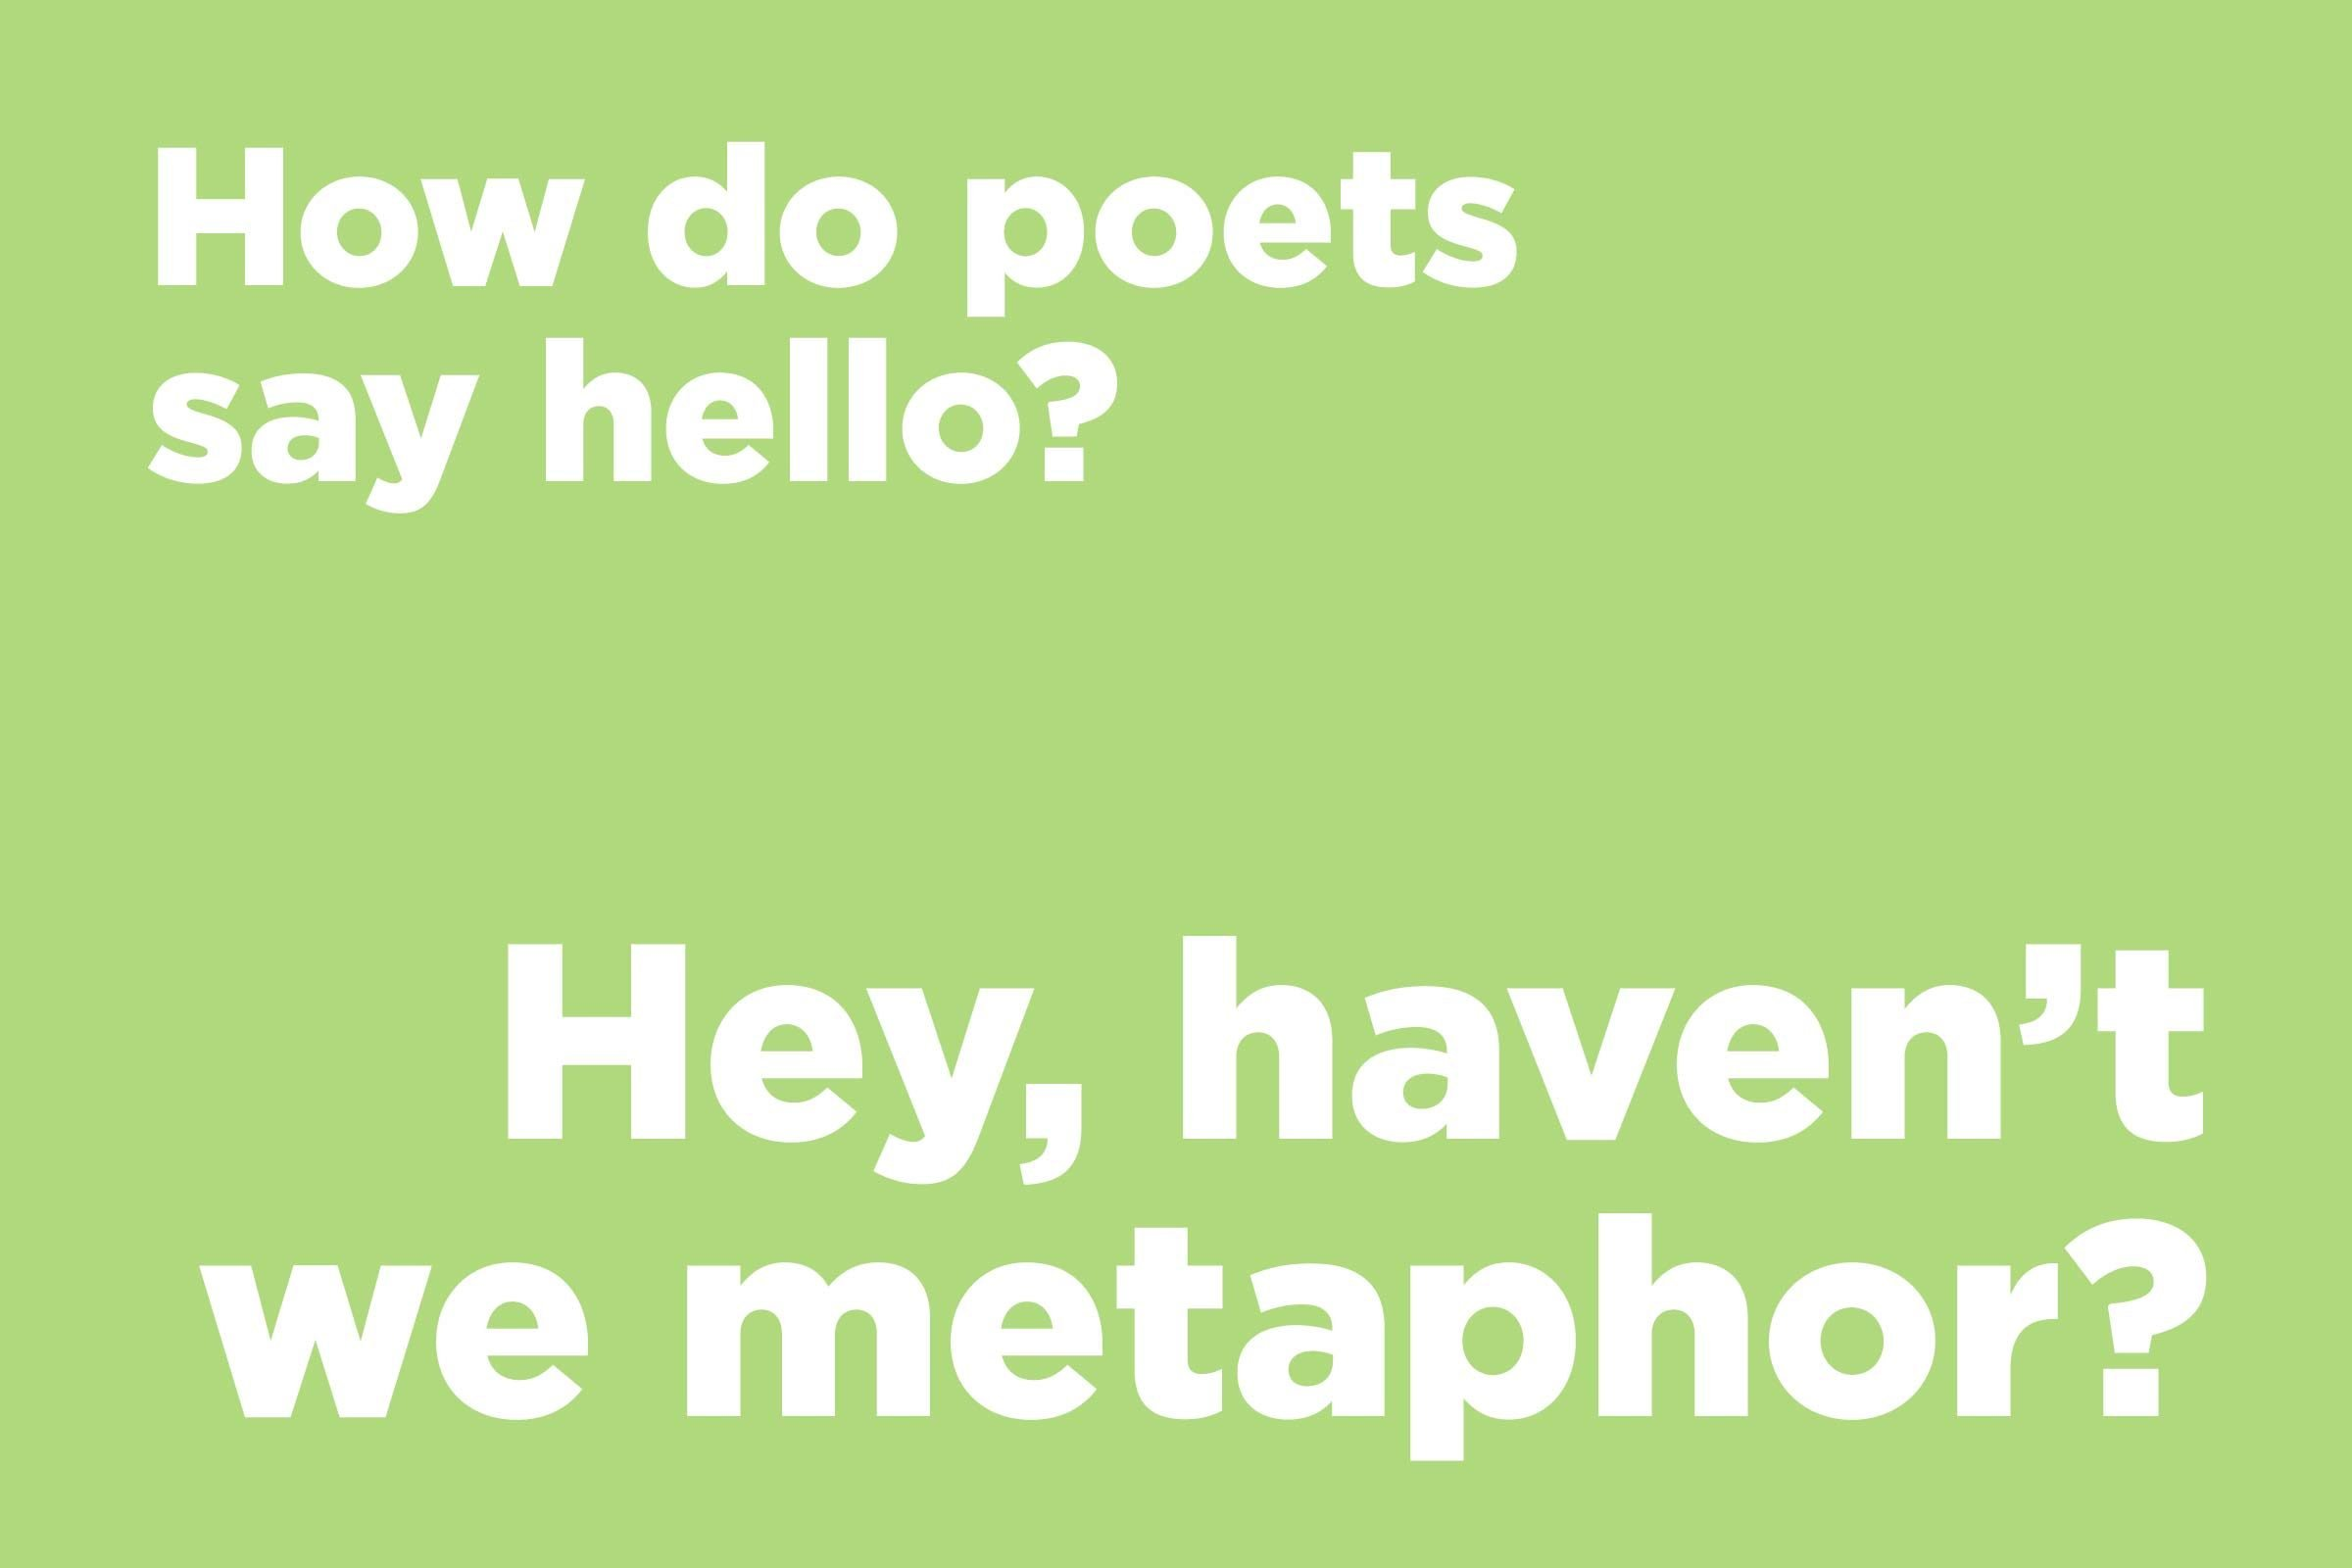 How do poets say hello?